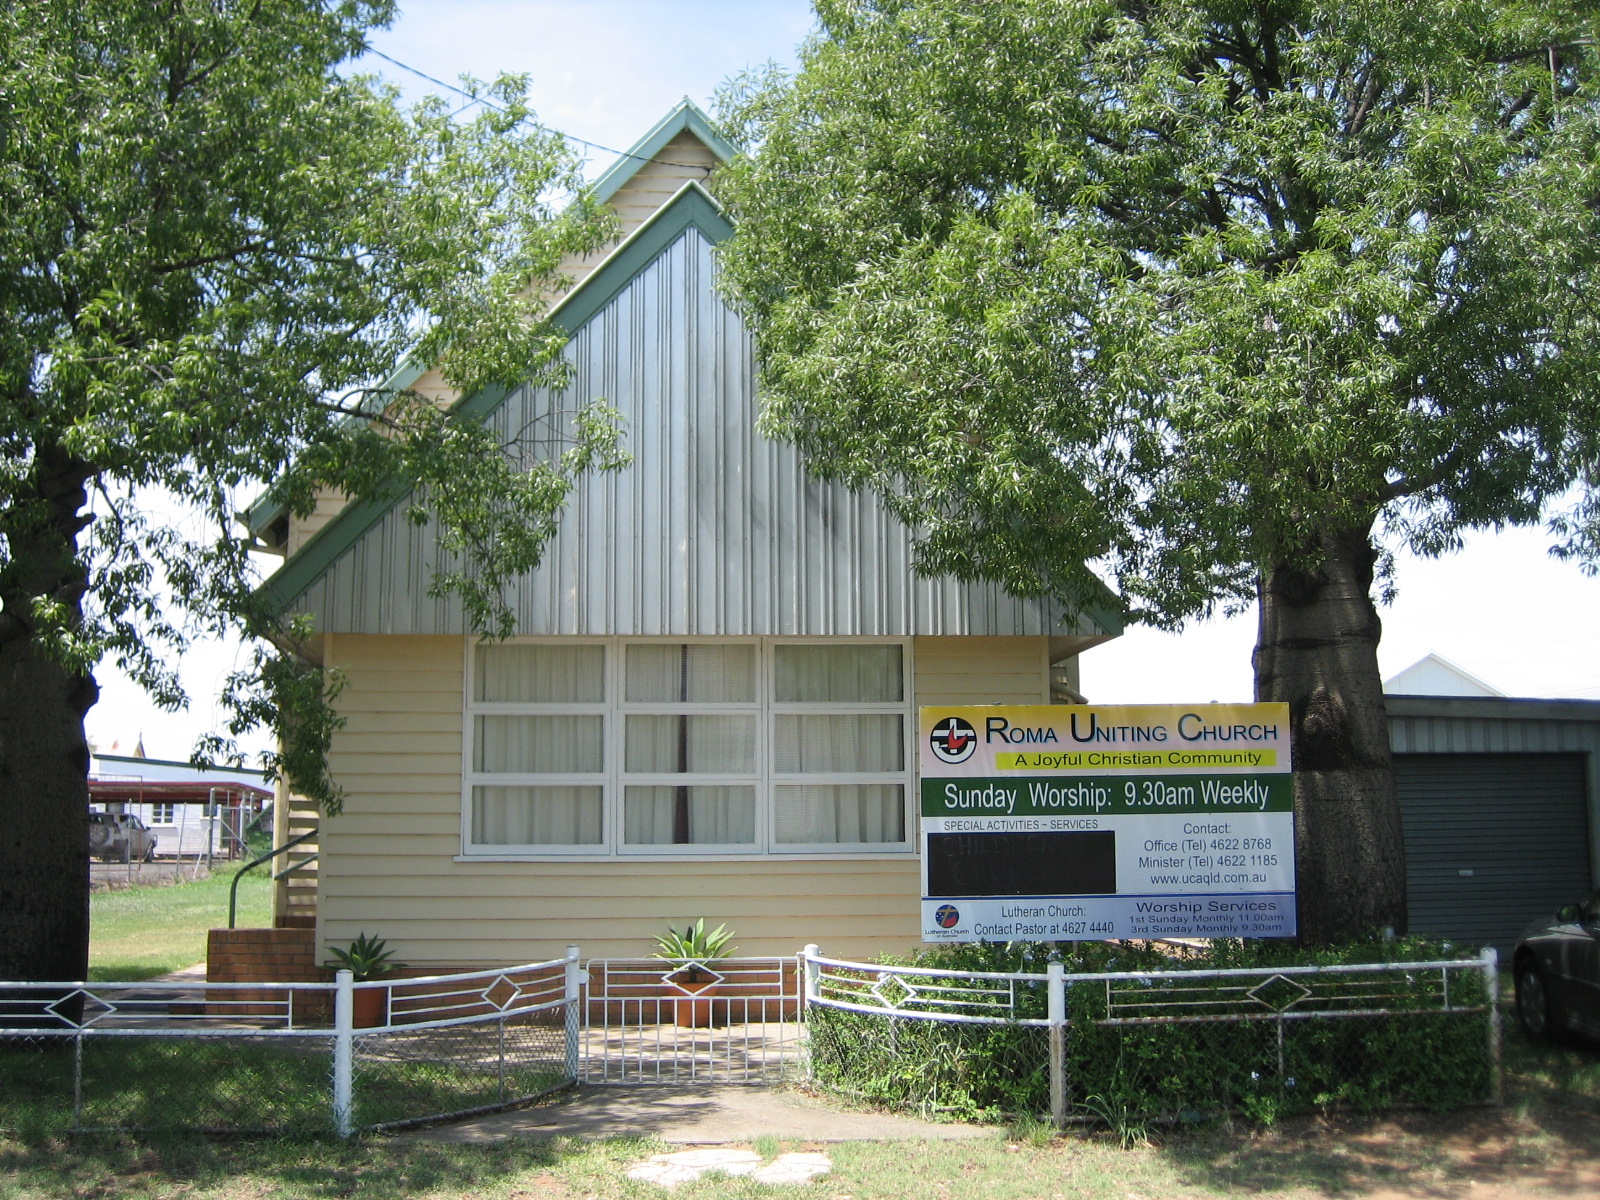 Roma Uniting Church